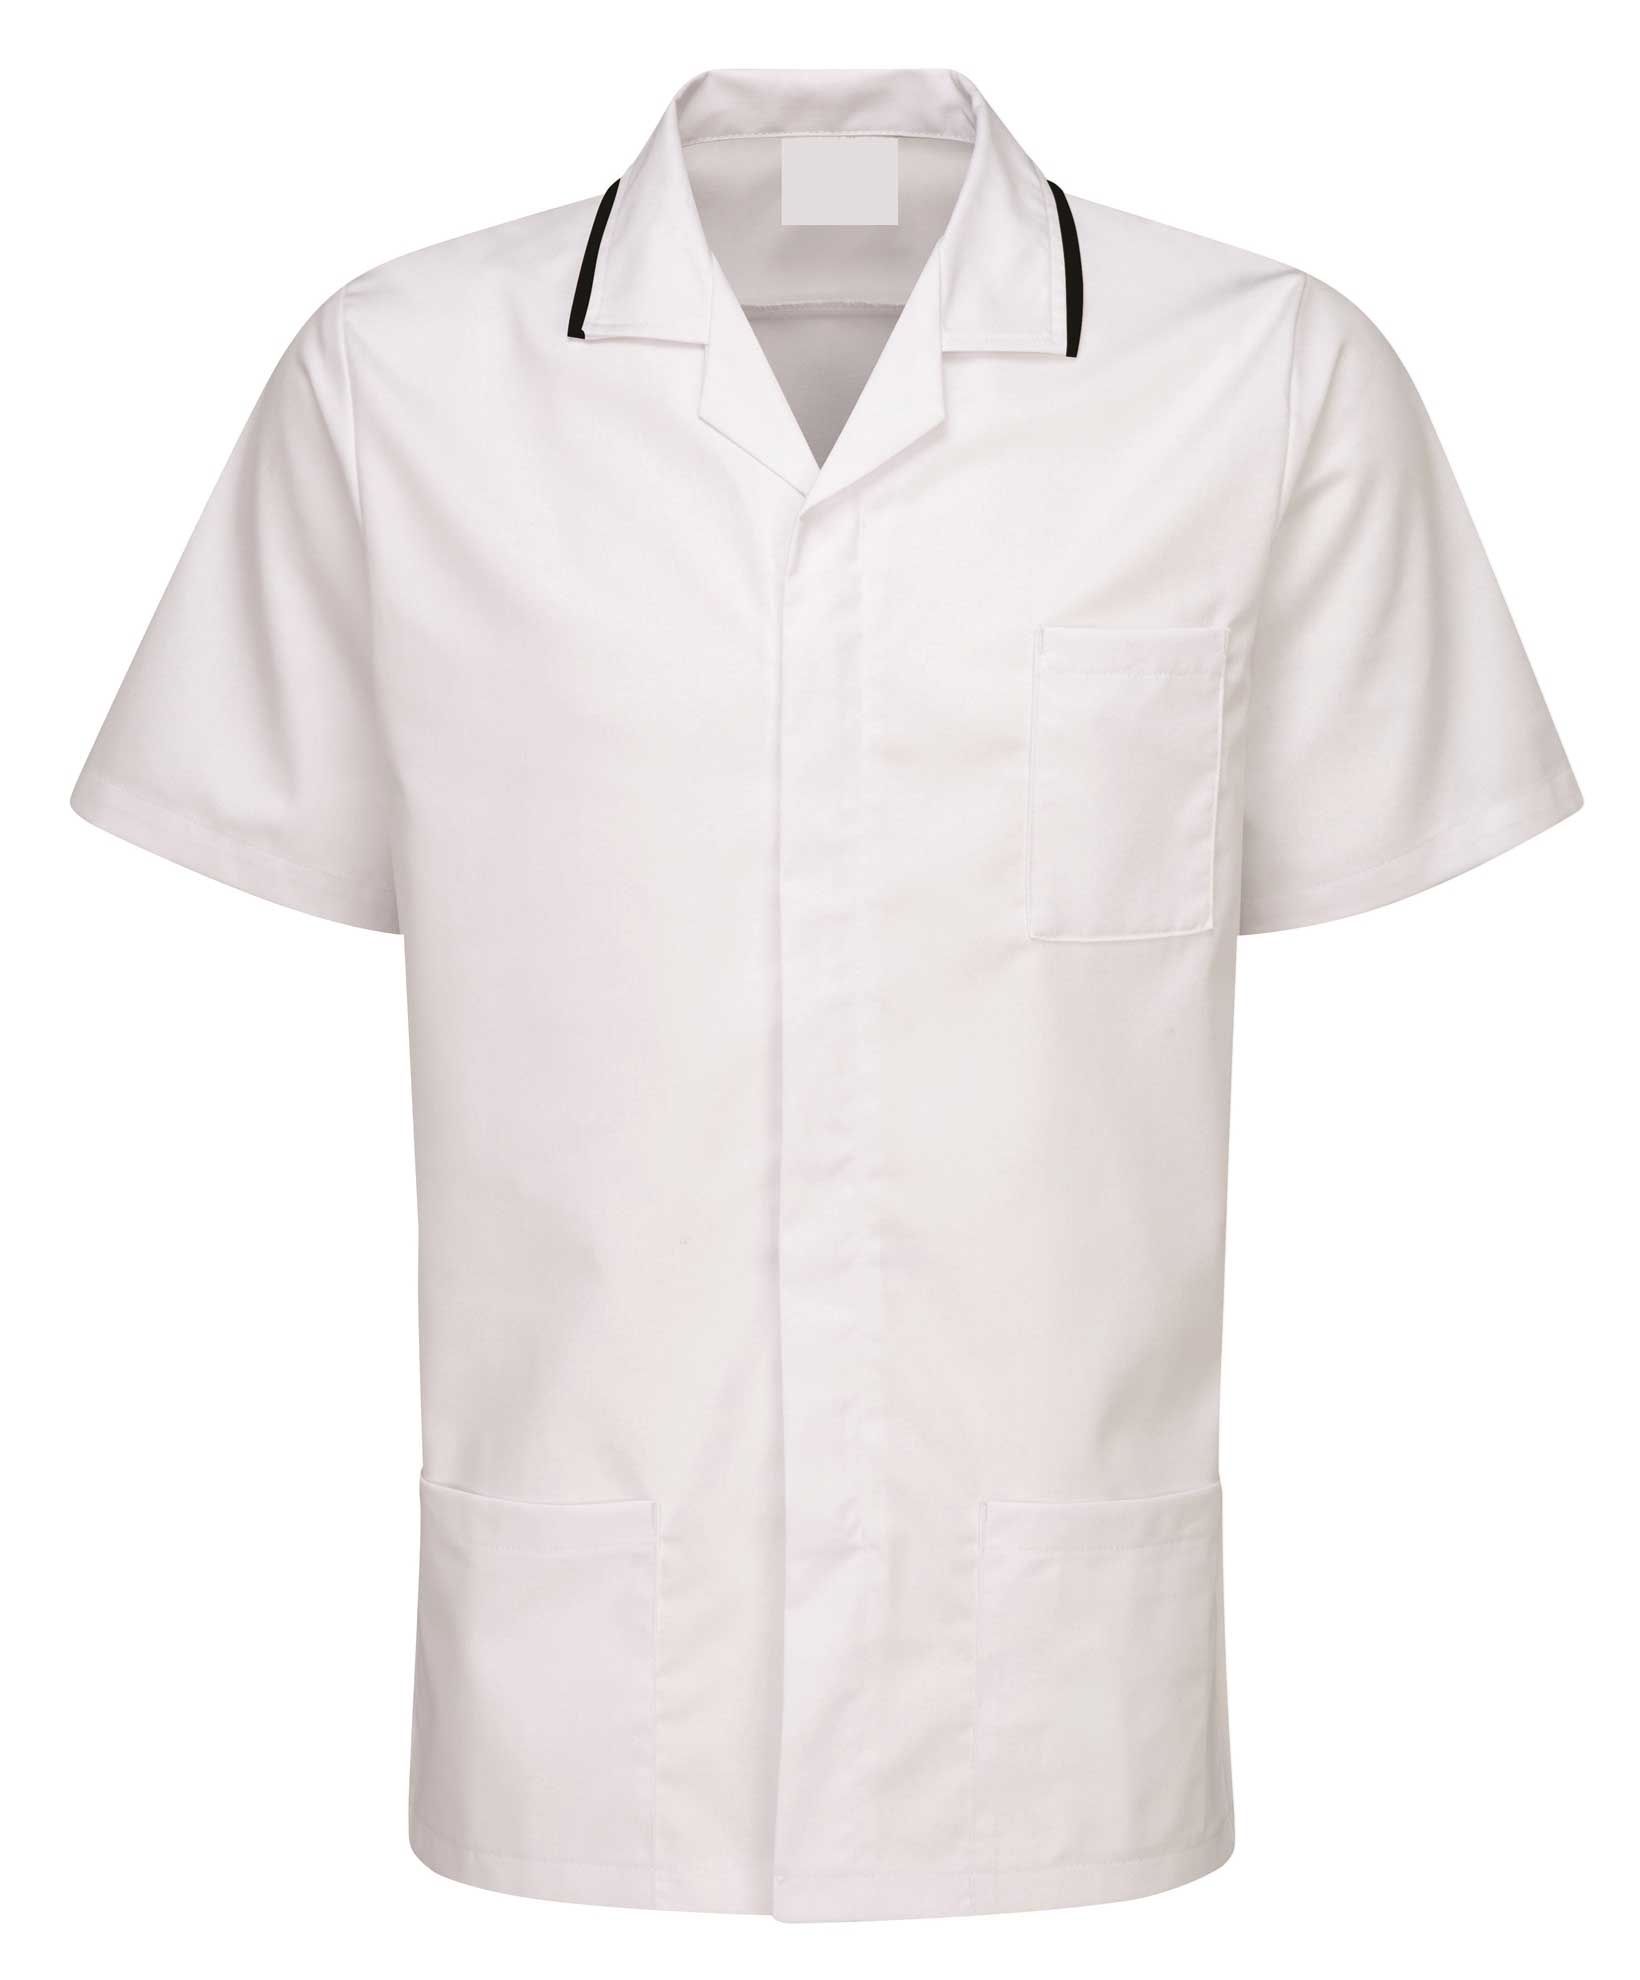 Picture of Advantage Front Fastening Tunic - White/Black